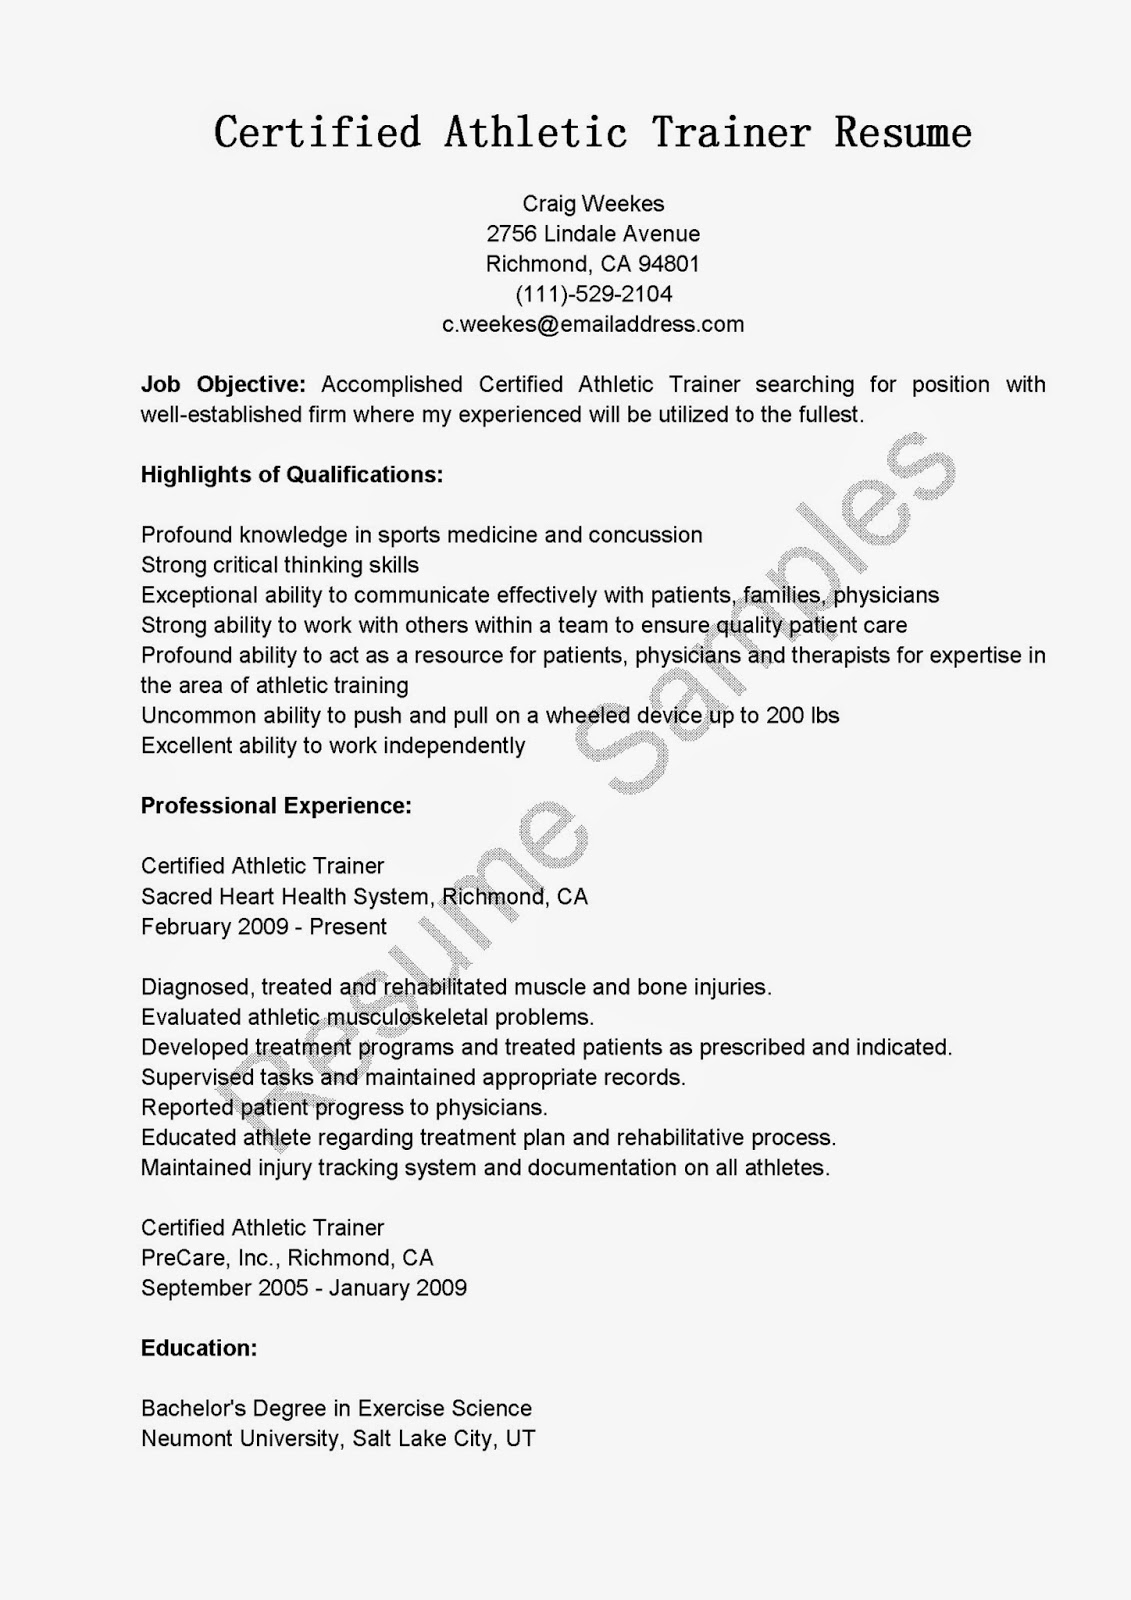 Sample Trainer Resume Resume Samples Certified Athletic Trainer Resume Sample